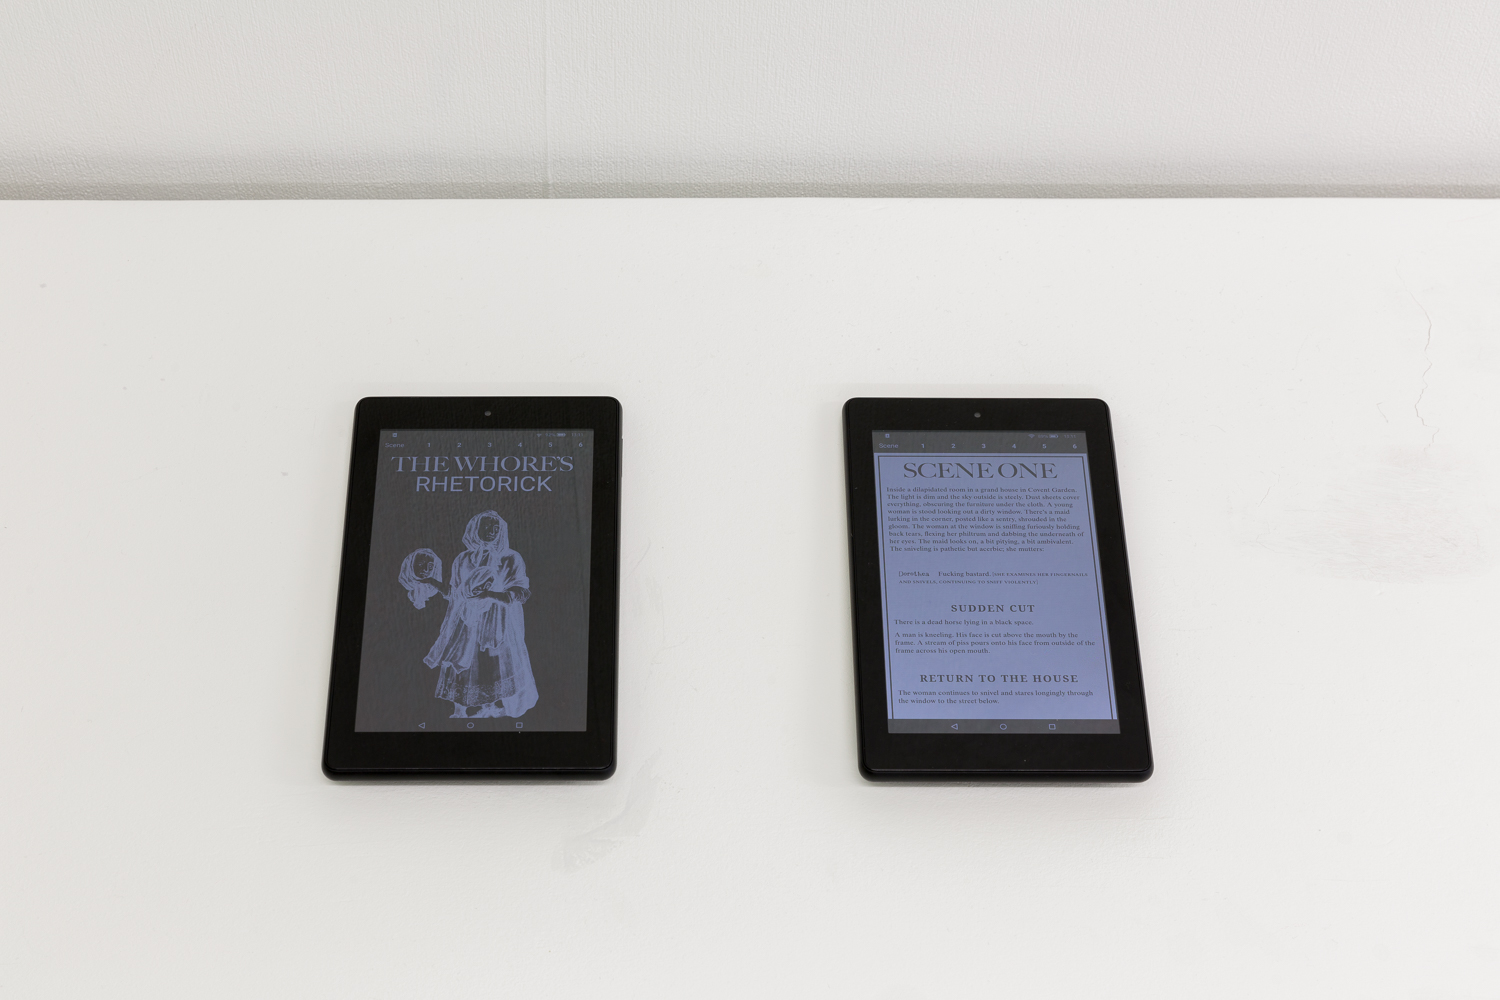 Georgia Horgan, Tablets displaying www.thewhoresrhetorick.com, 2019. Courtesy of the artist. Photo: Tim Bowditch